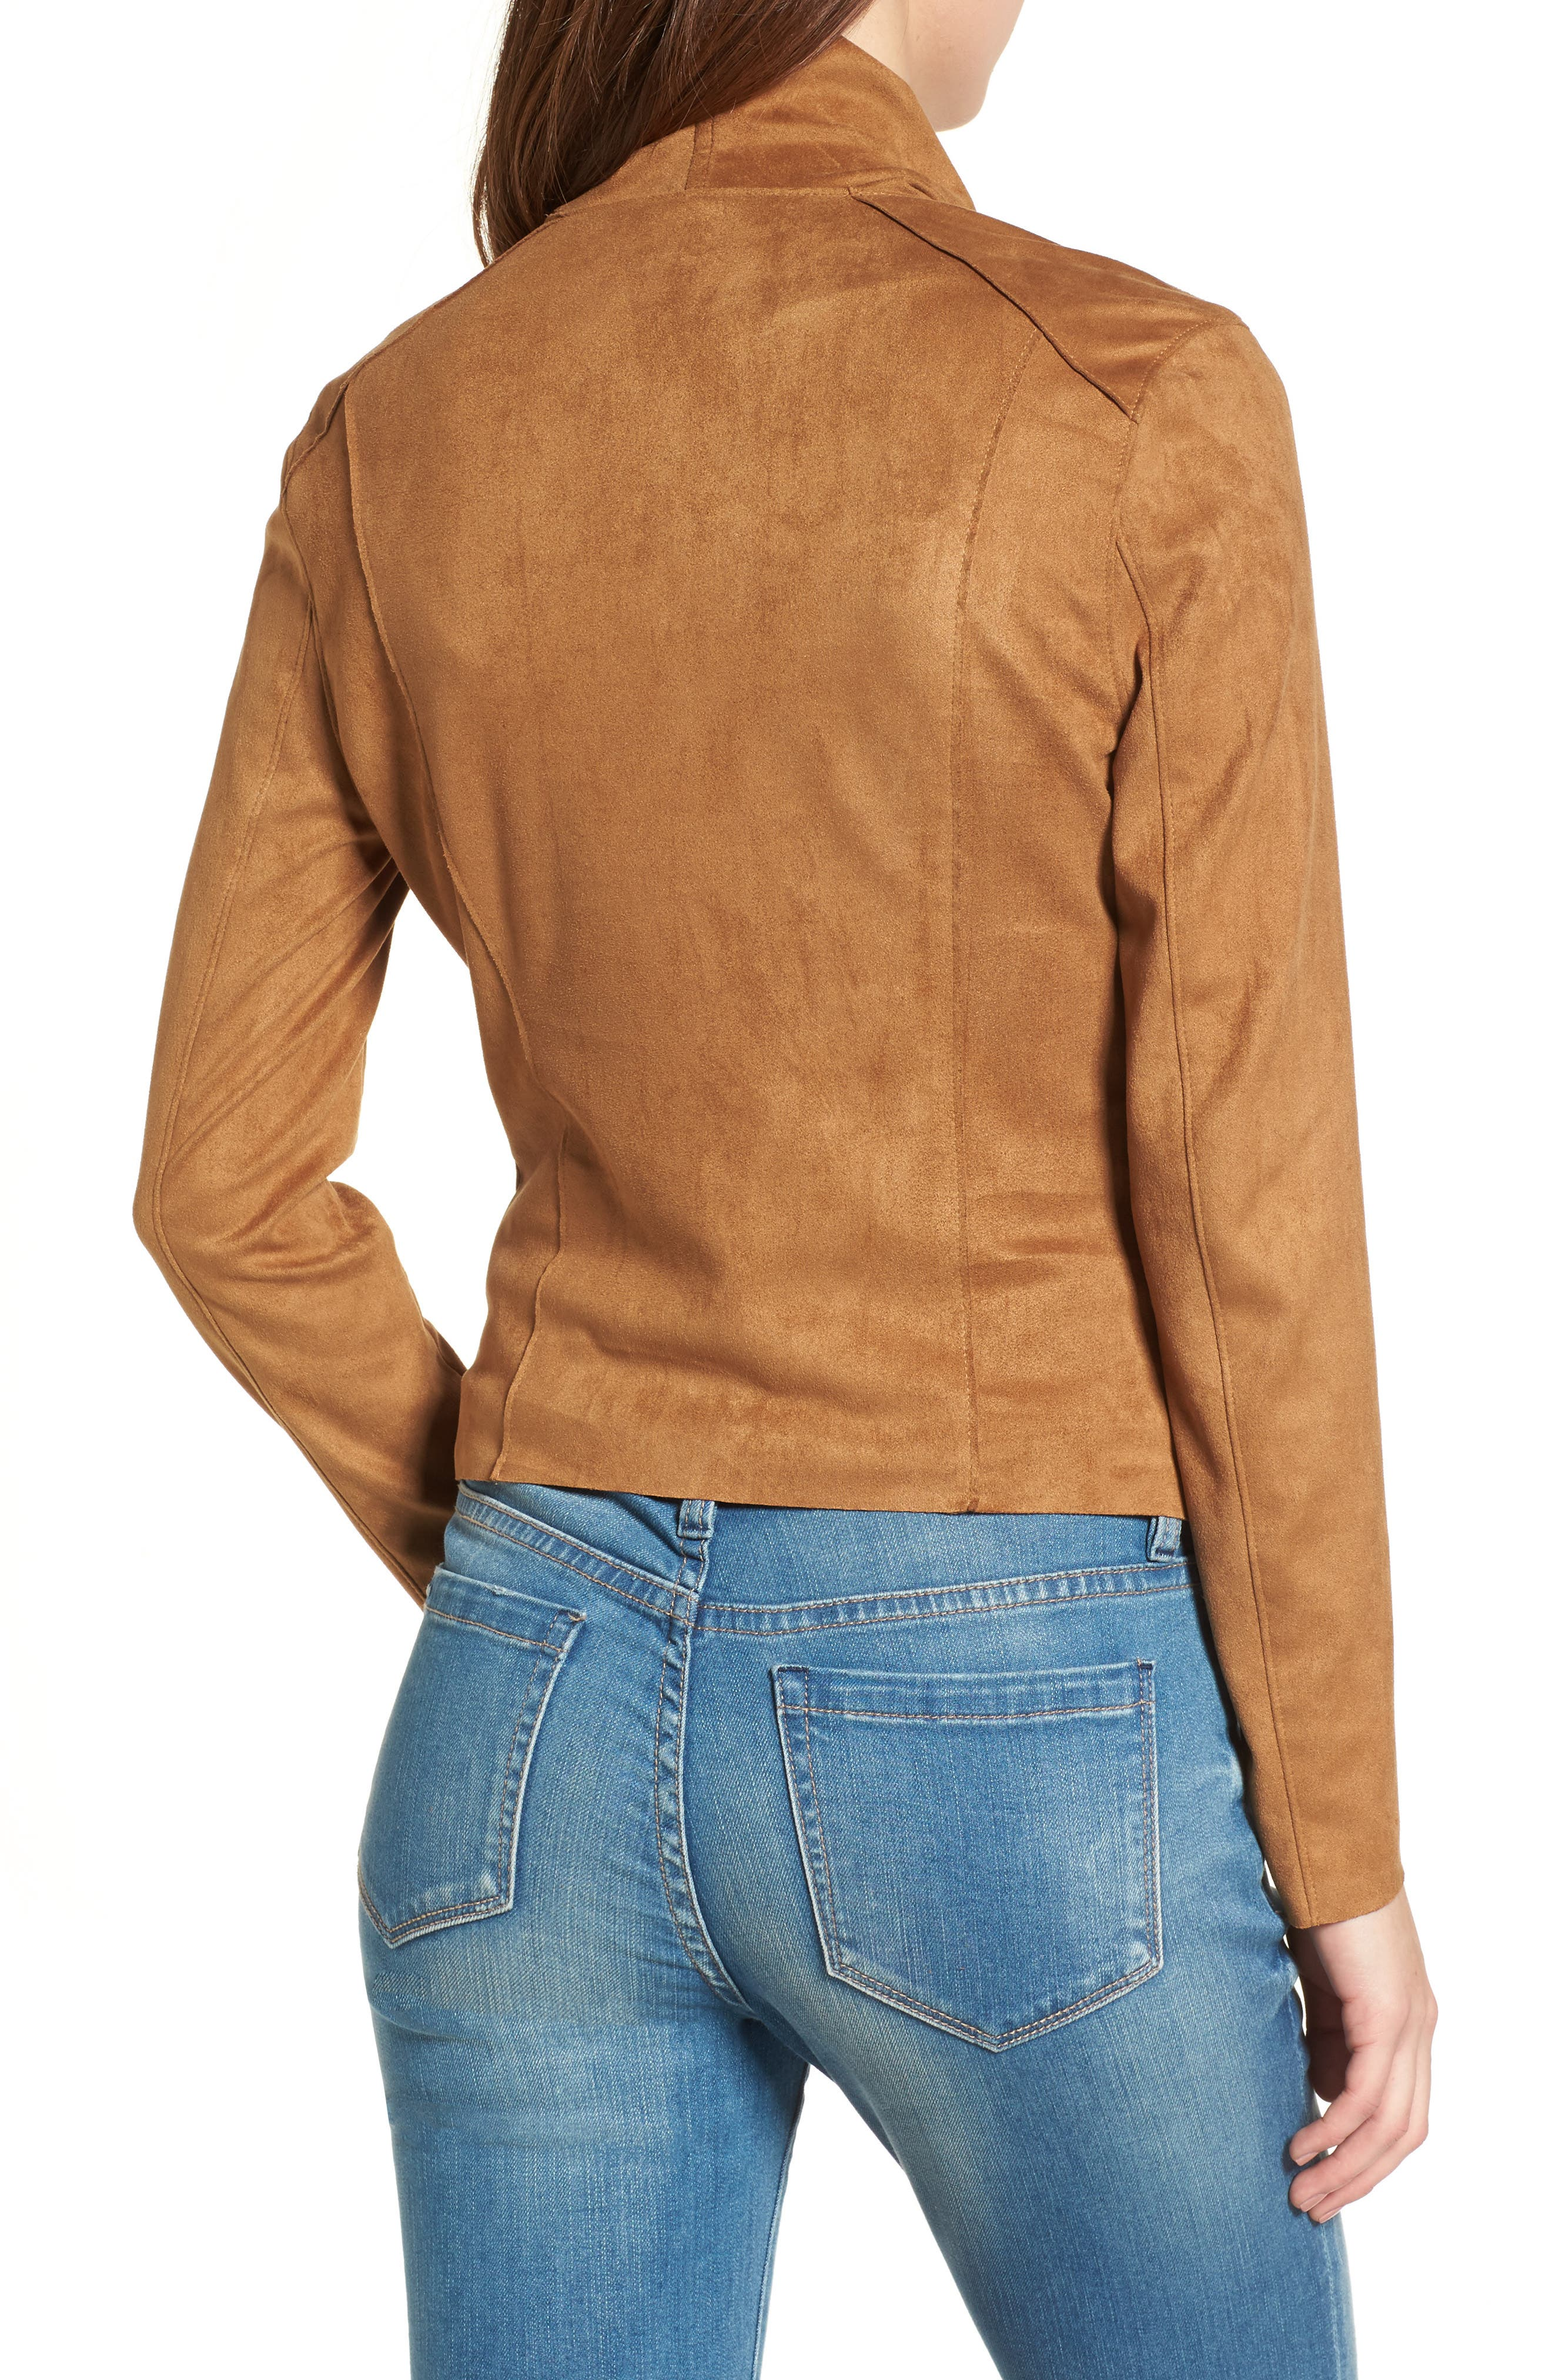 BLANKNYC,                             Drape Front Faux Suede Jacket,                             Alternate thumbnail 2, color,                             CAMEL BACK BROWN